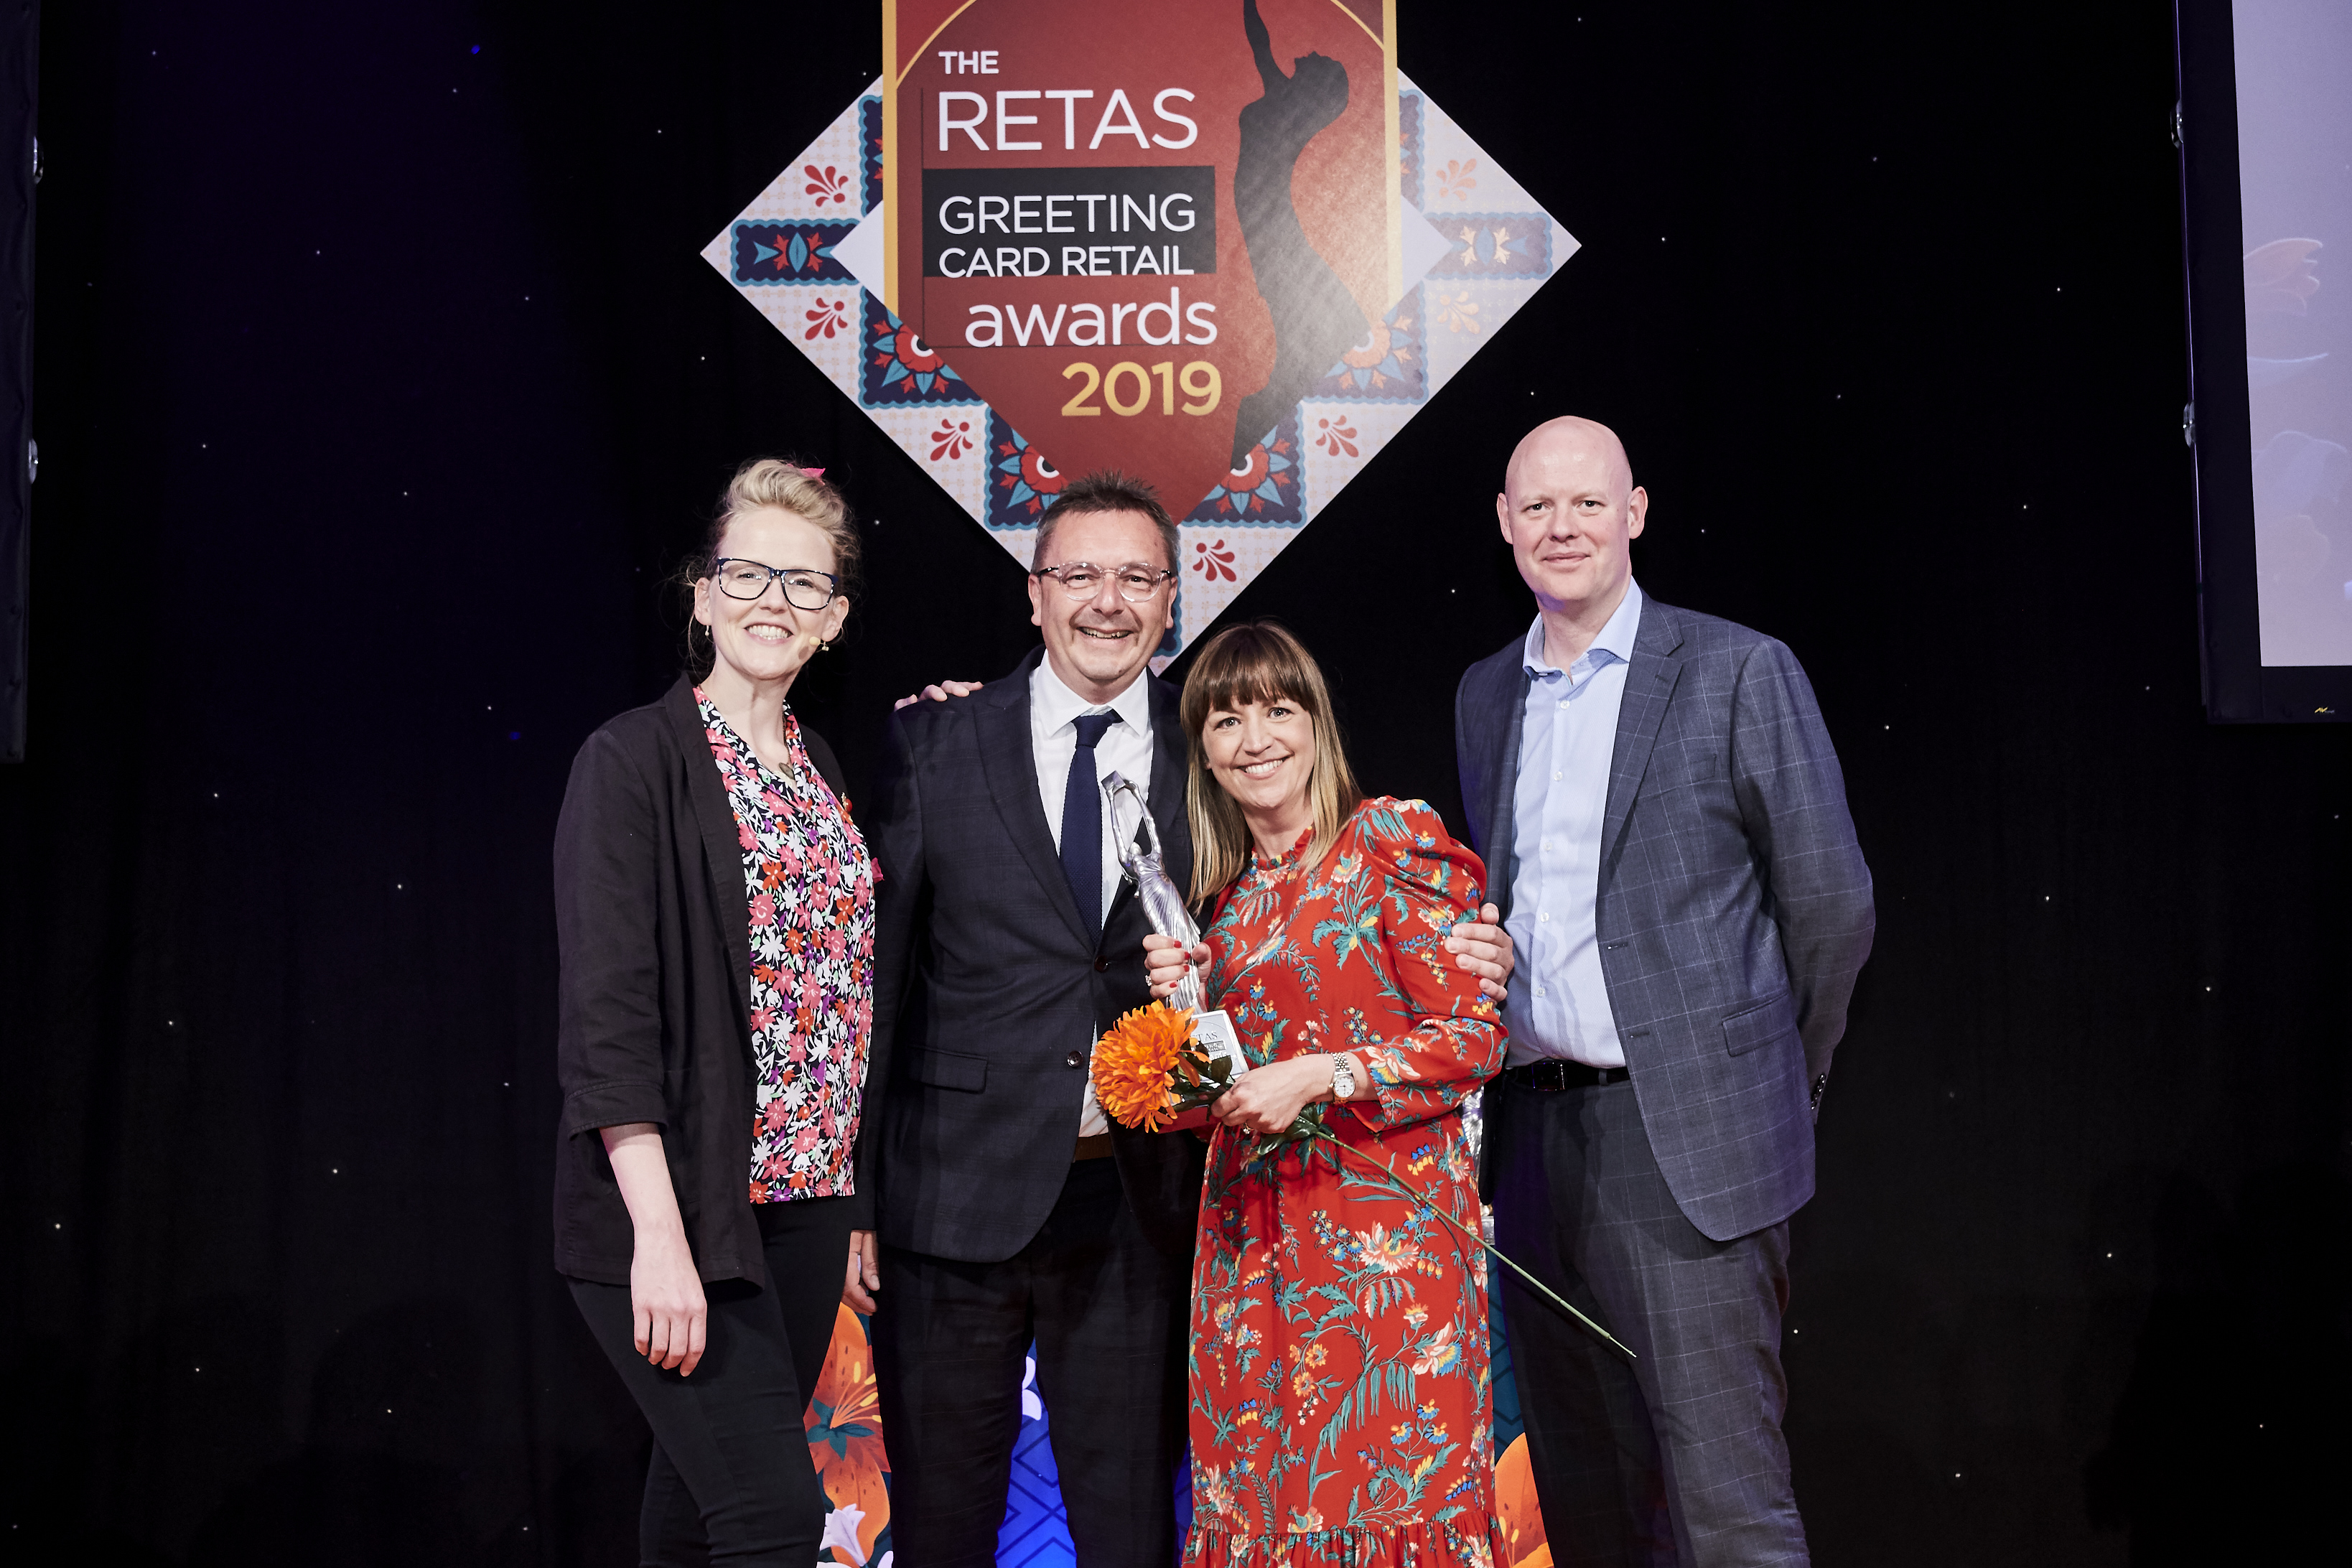 Above: Penny and (second left) Simon Bailey, co-owners of Bailey's Cards and Gifts, Southport and Crosby, were delighted to accept their Retas award from Darren Cave, commercial director of category sponsor, UK Greetings.